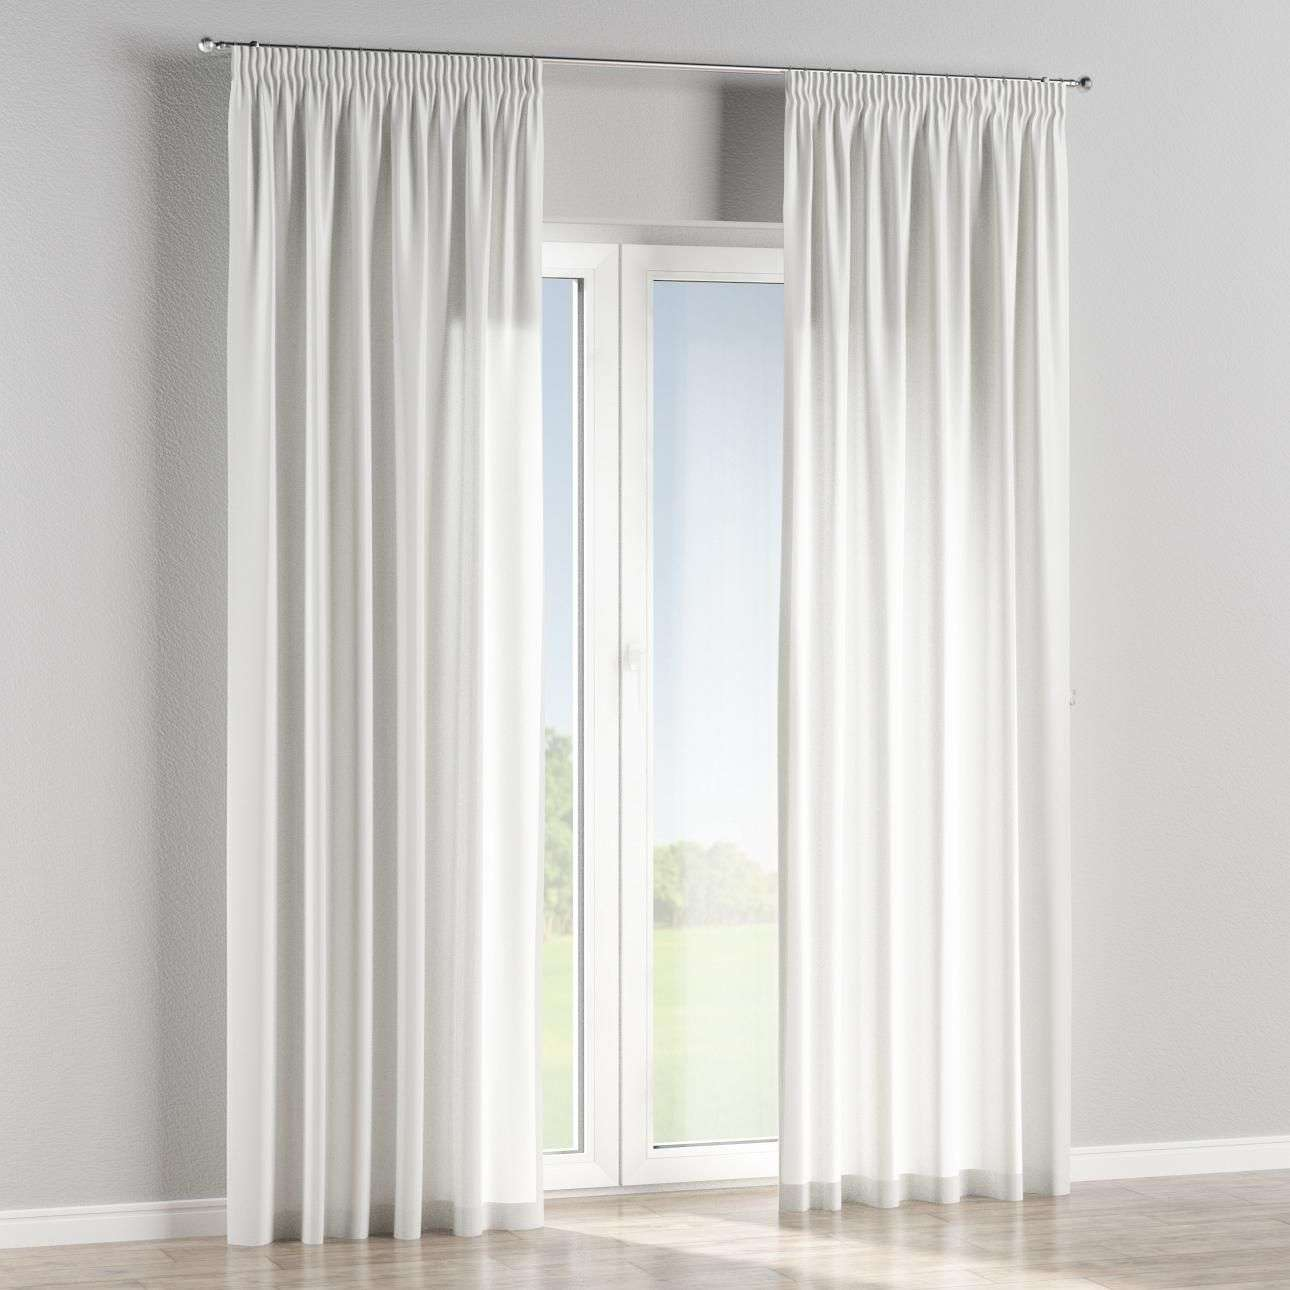 Pencil pleat lined curtains in collection Venice, fabric: 140-52